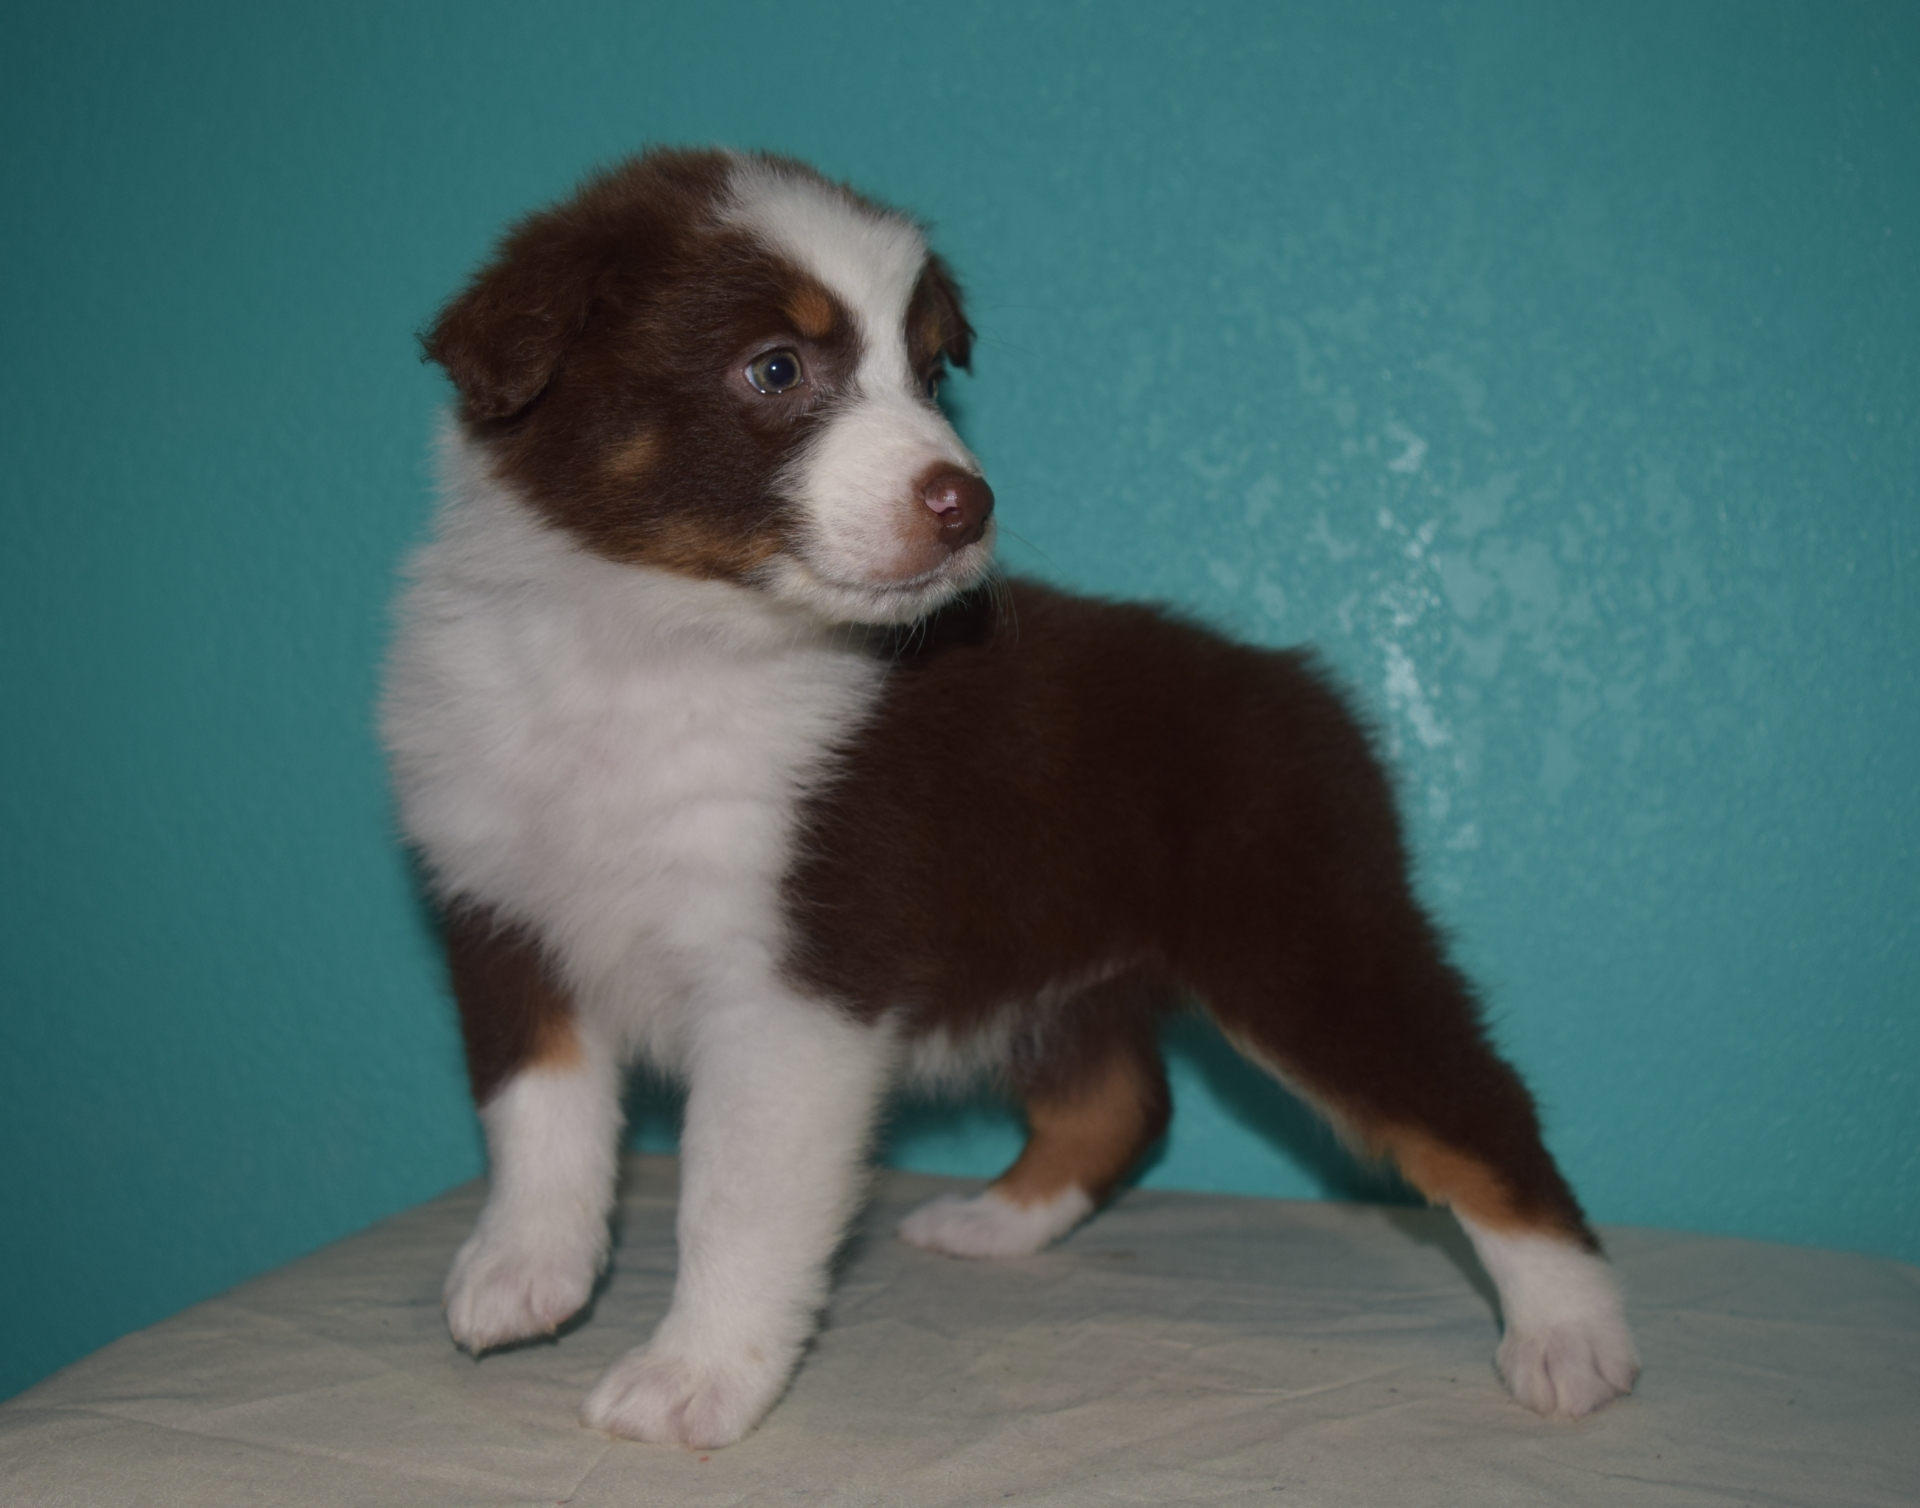 Red Tri Female Australian Shepherd Puppy #1 1 day